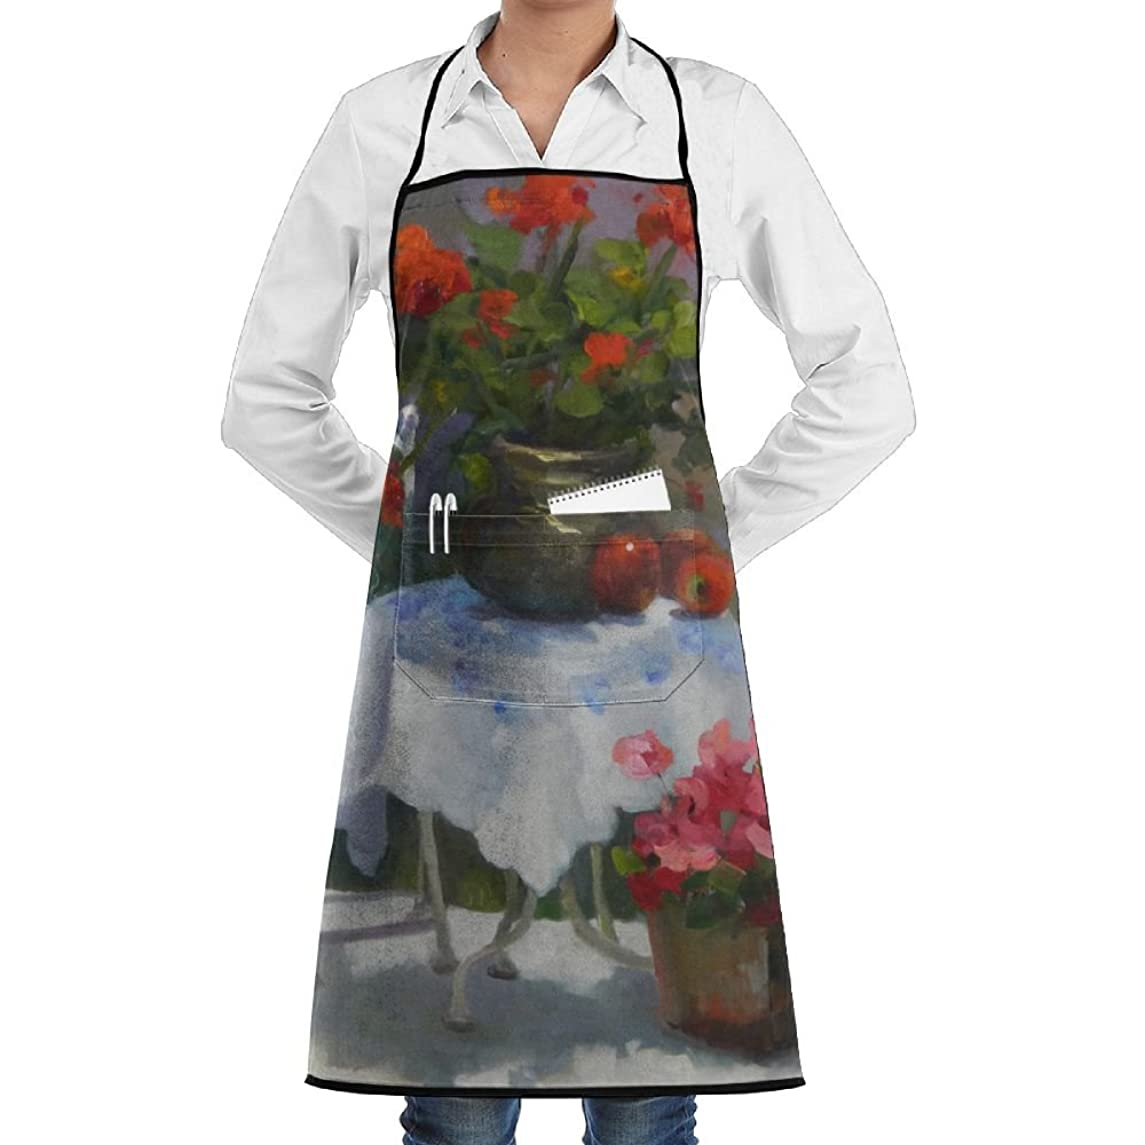 Novelty Red Geraniums Painting Kitchen Chef Apron With Big Pockets - Chef Apron For Cooking,Baking,Crafting,Gardening And BBQ